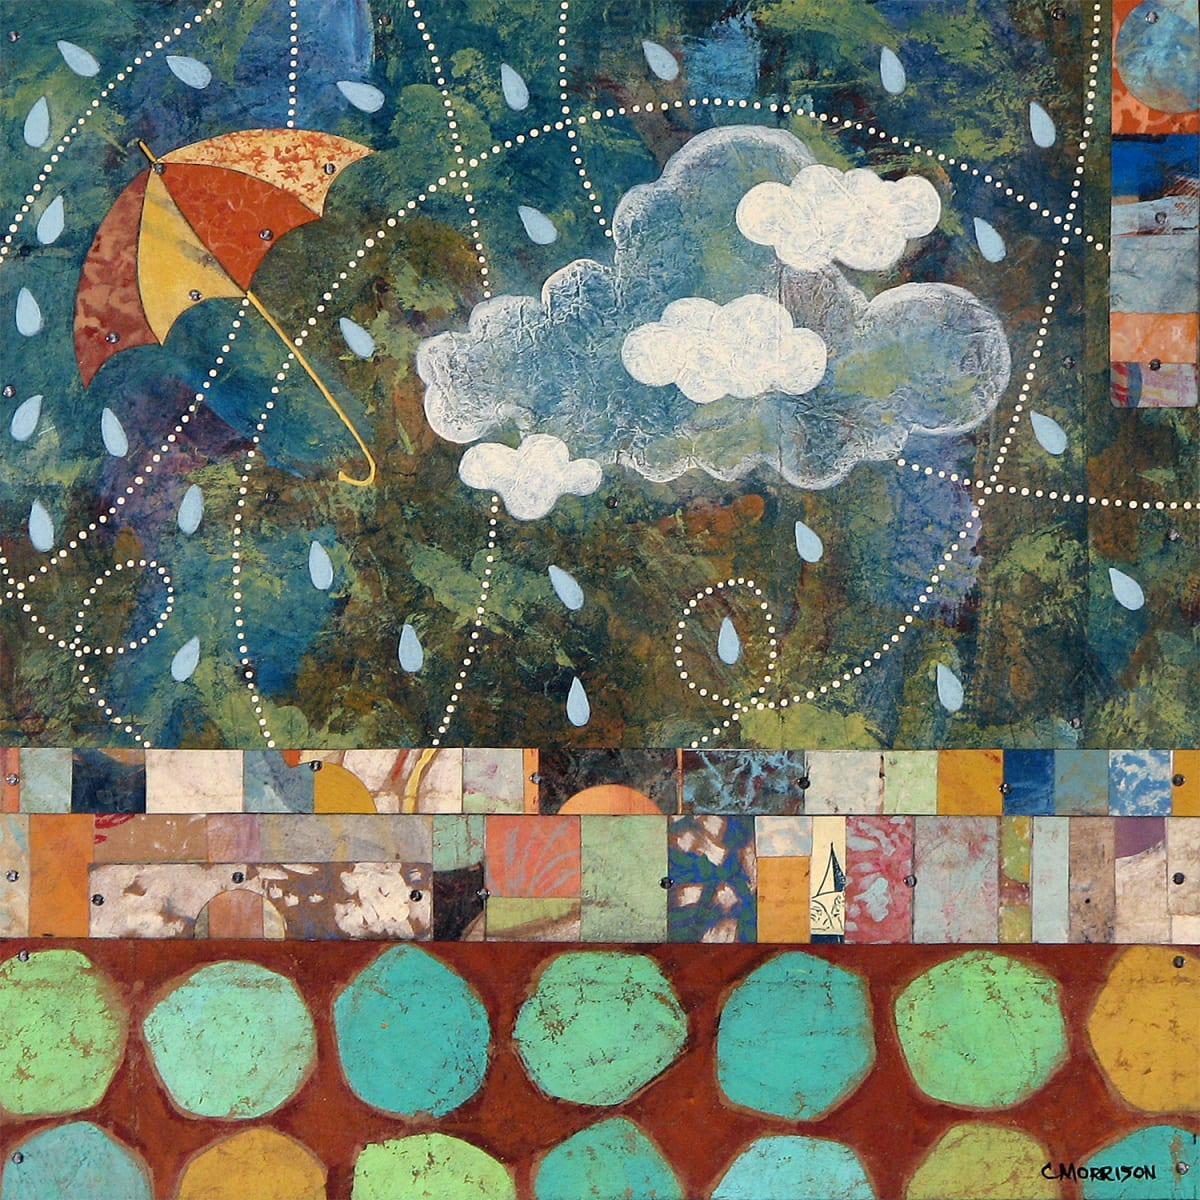 # 70 (Unframed print) by Connie Morrison